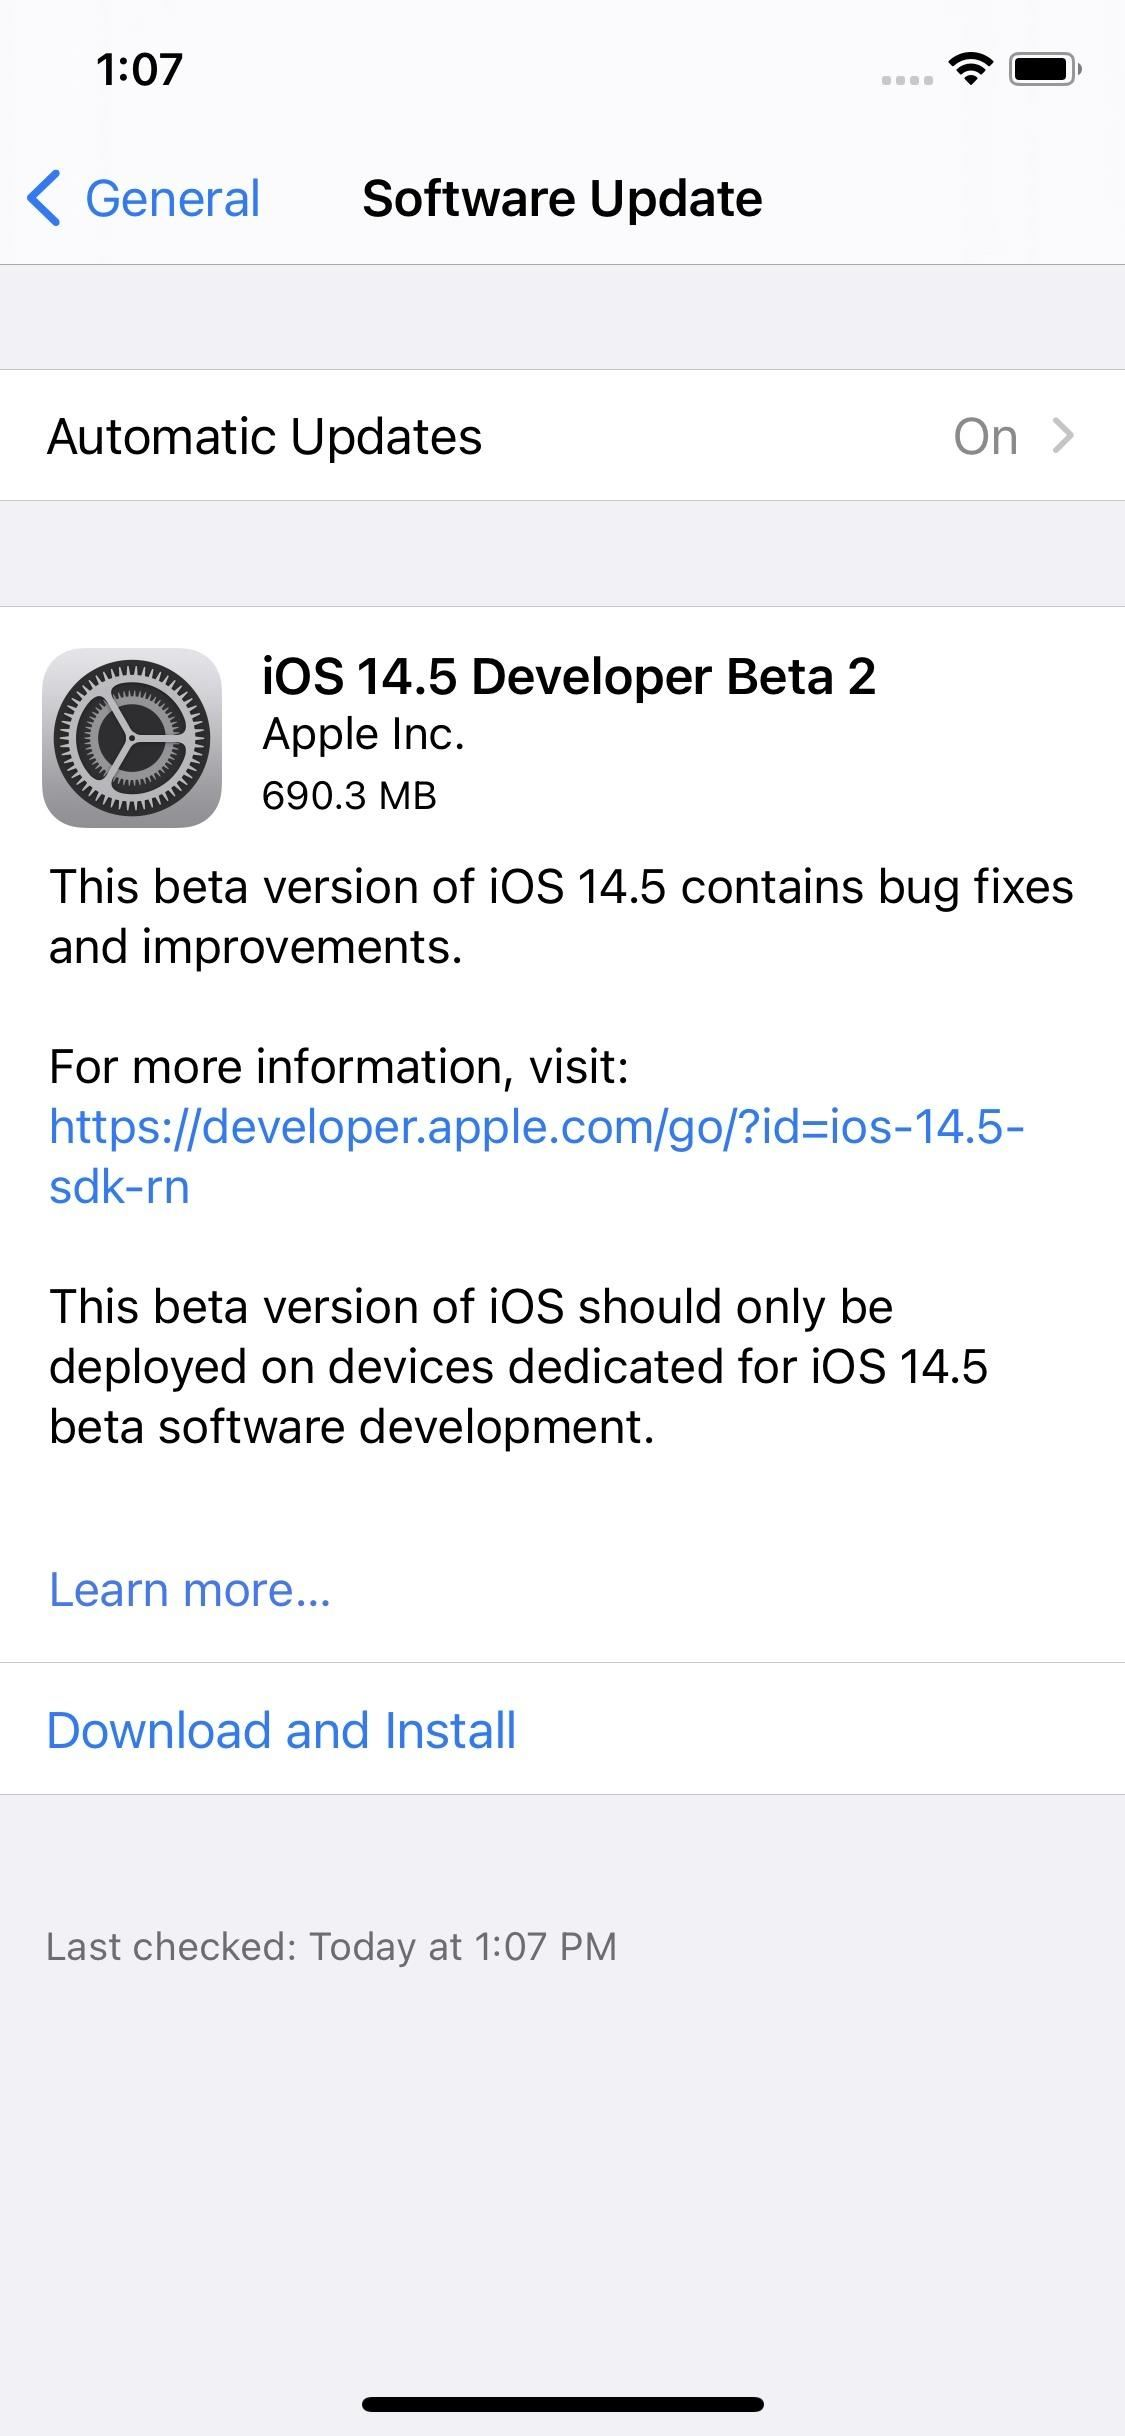 Apple Releases iOS 14.5 Developer Beta 2 for iPhone, Adds 200+ New Emoji and iPad Microphone Privacy Feature